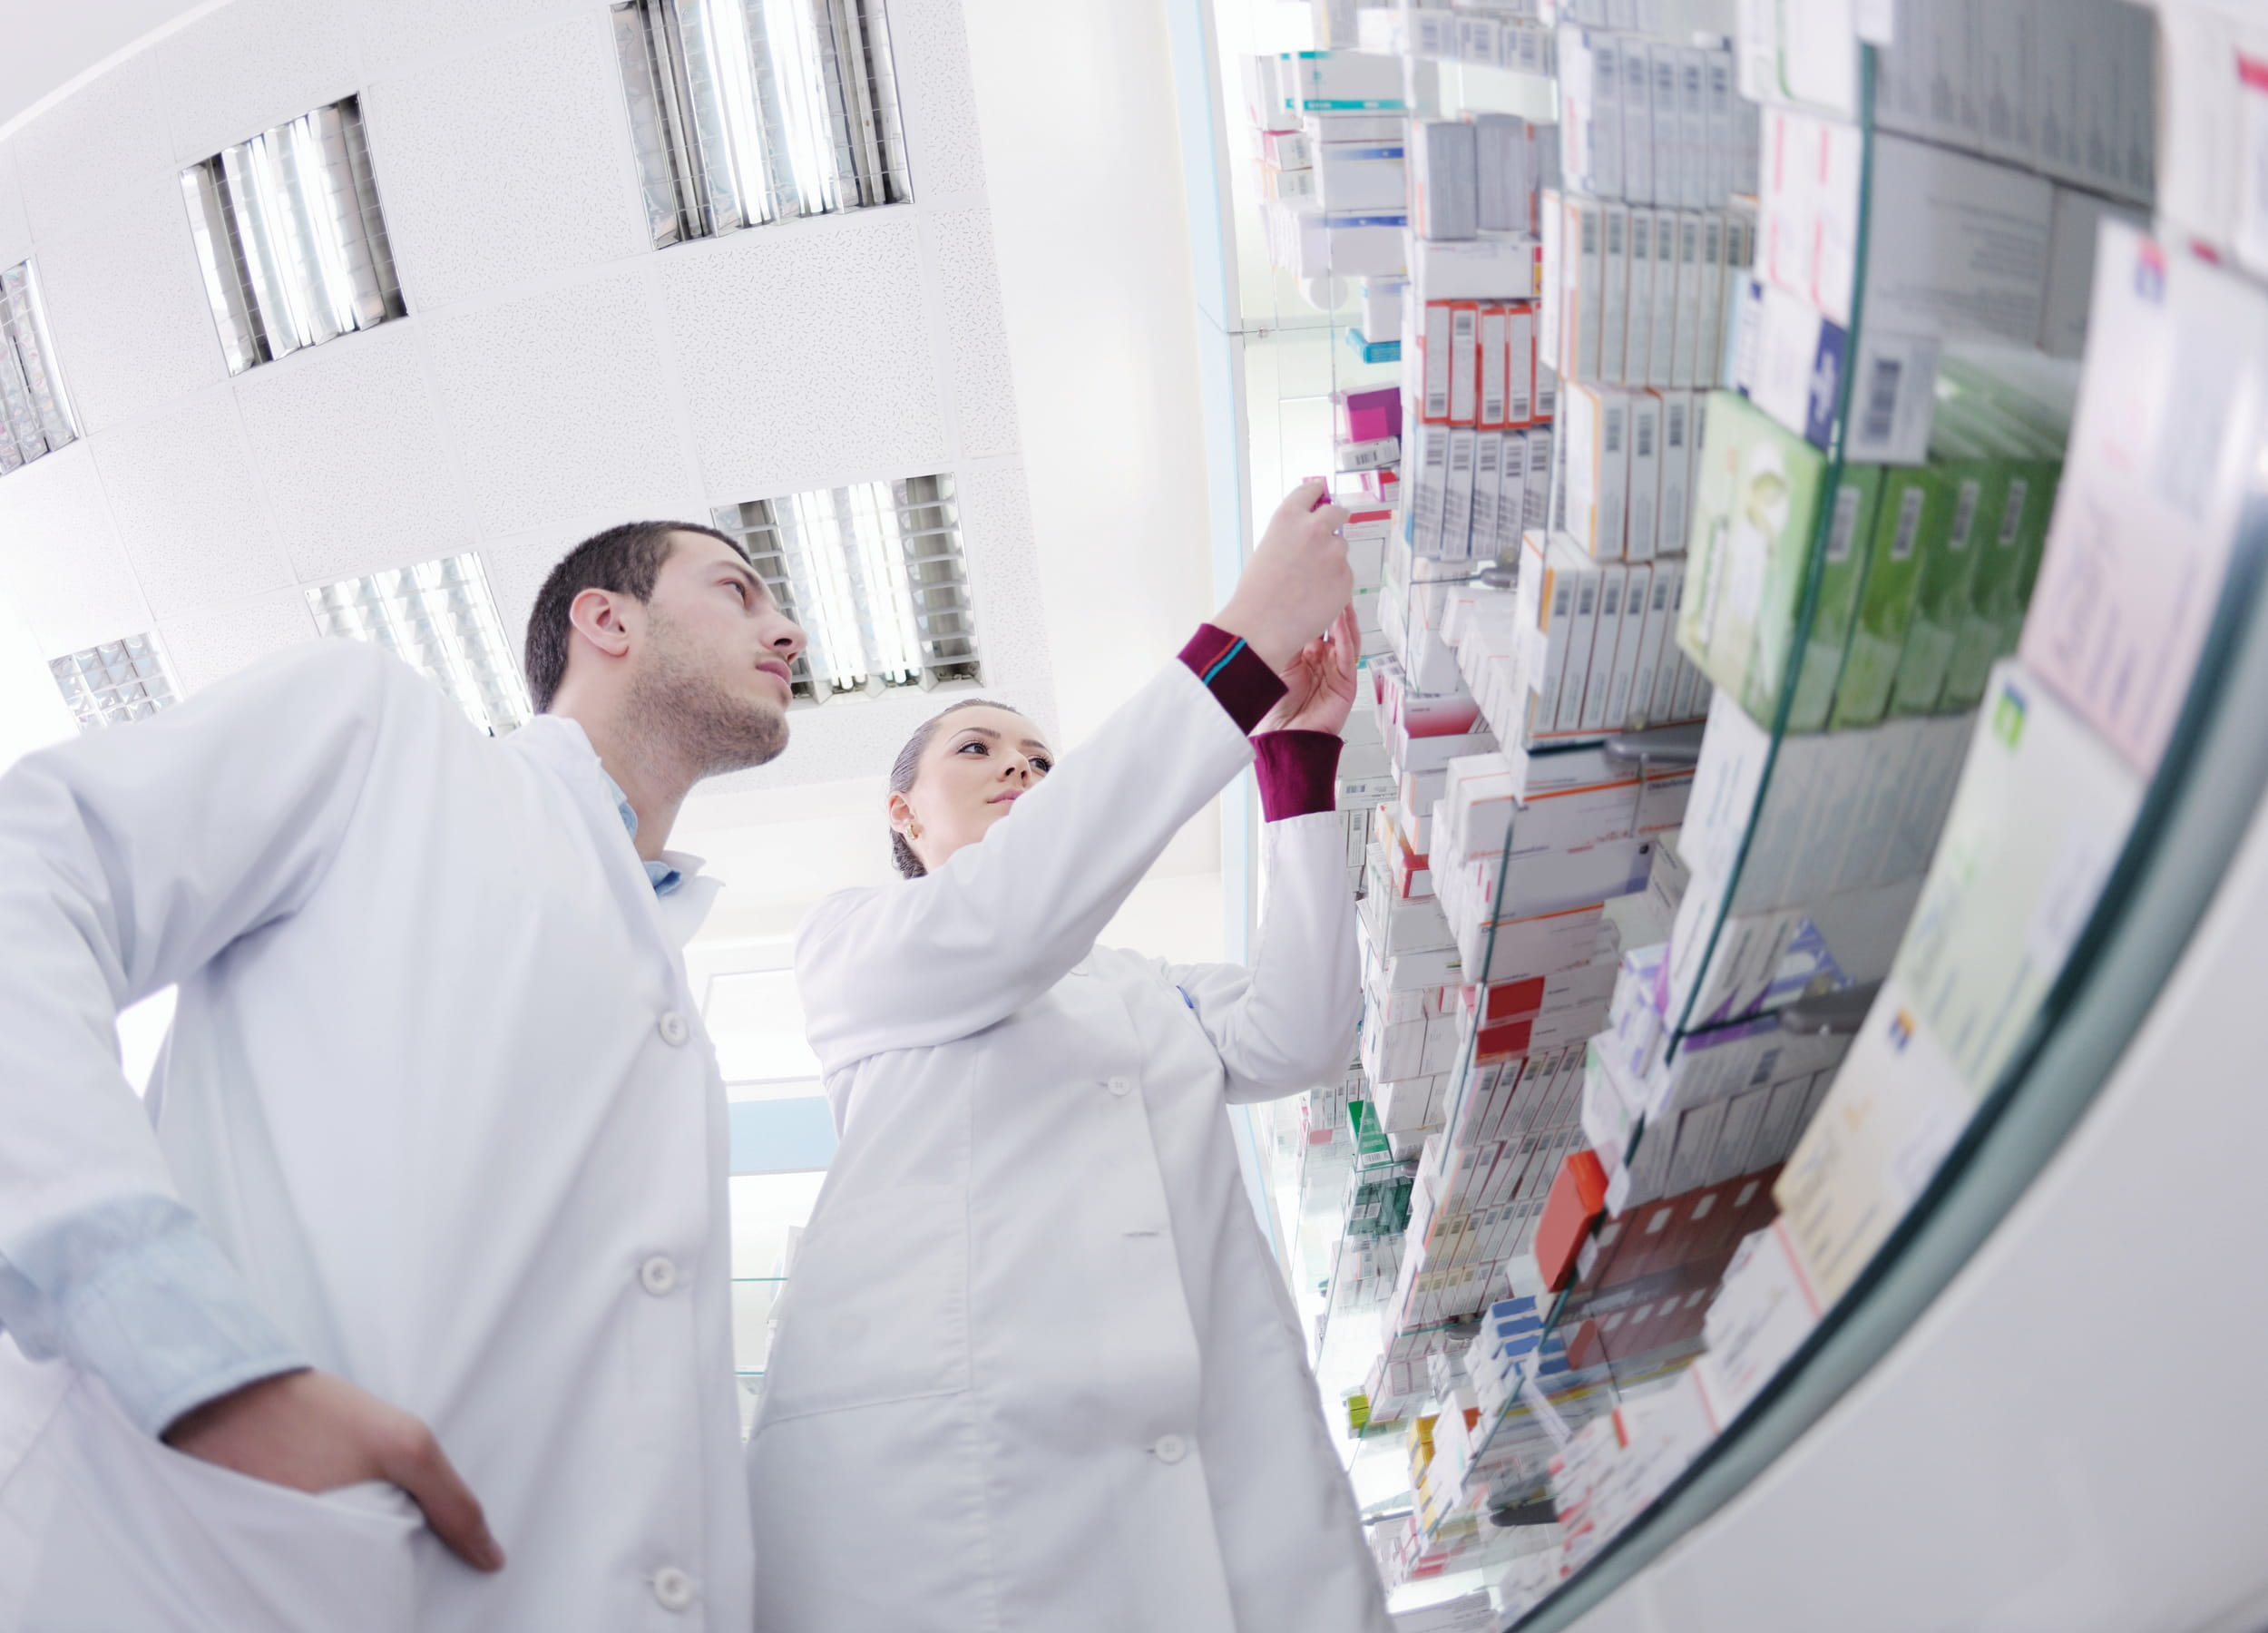 Pharmacy technicians looking at boxes of medication